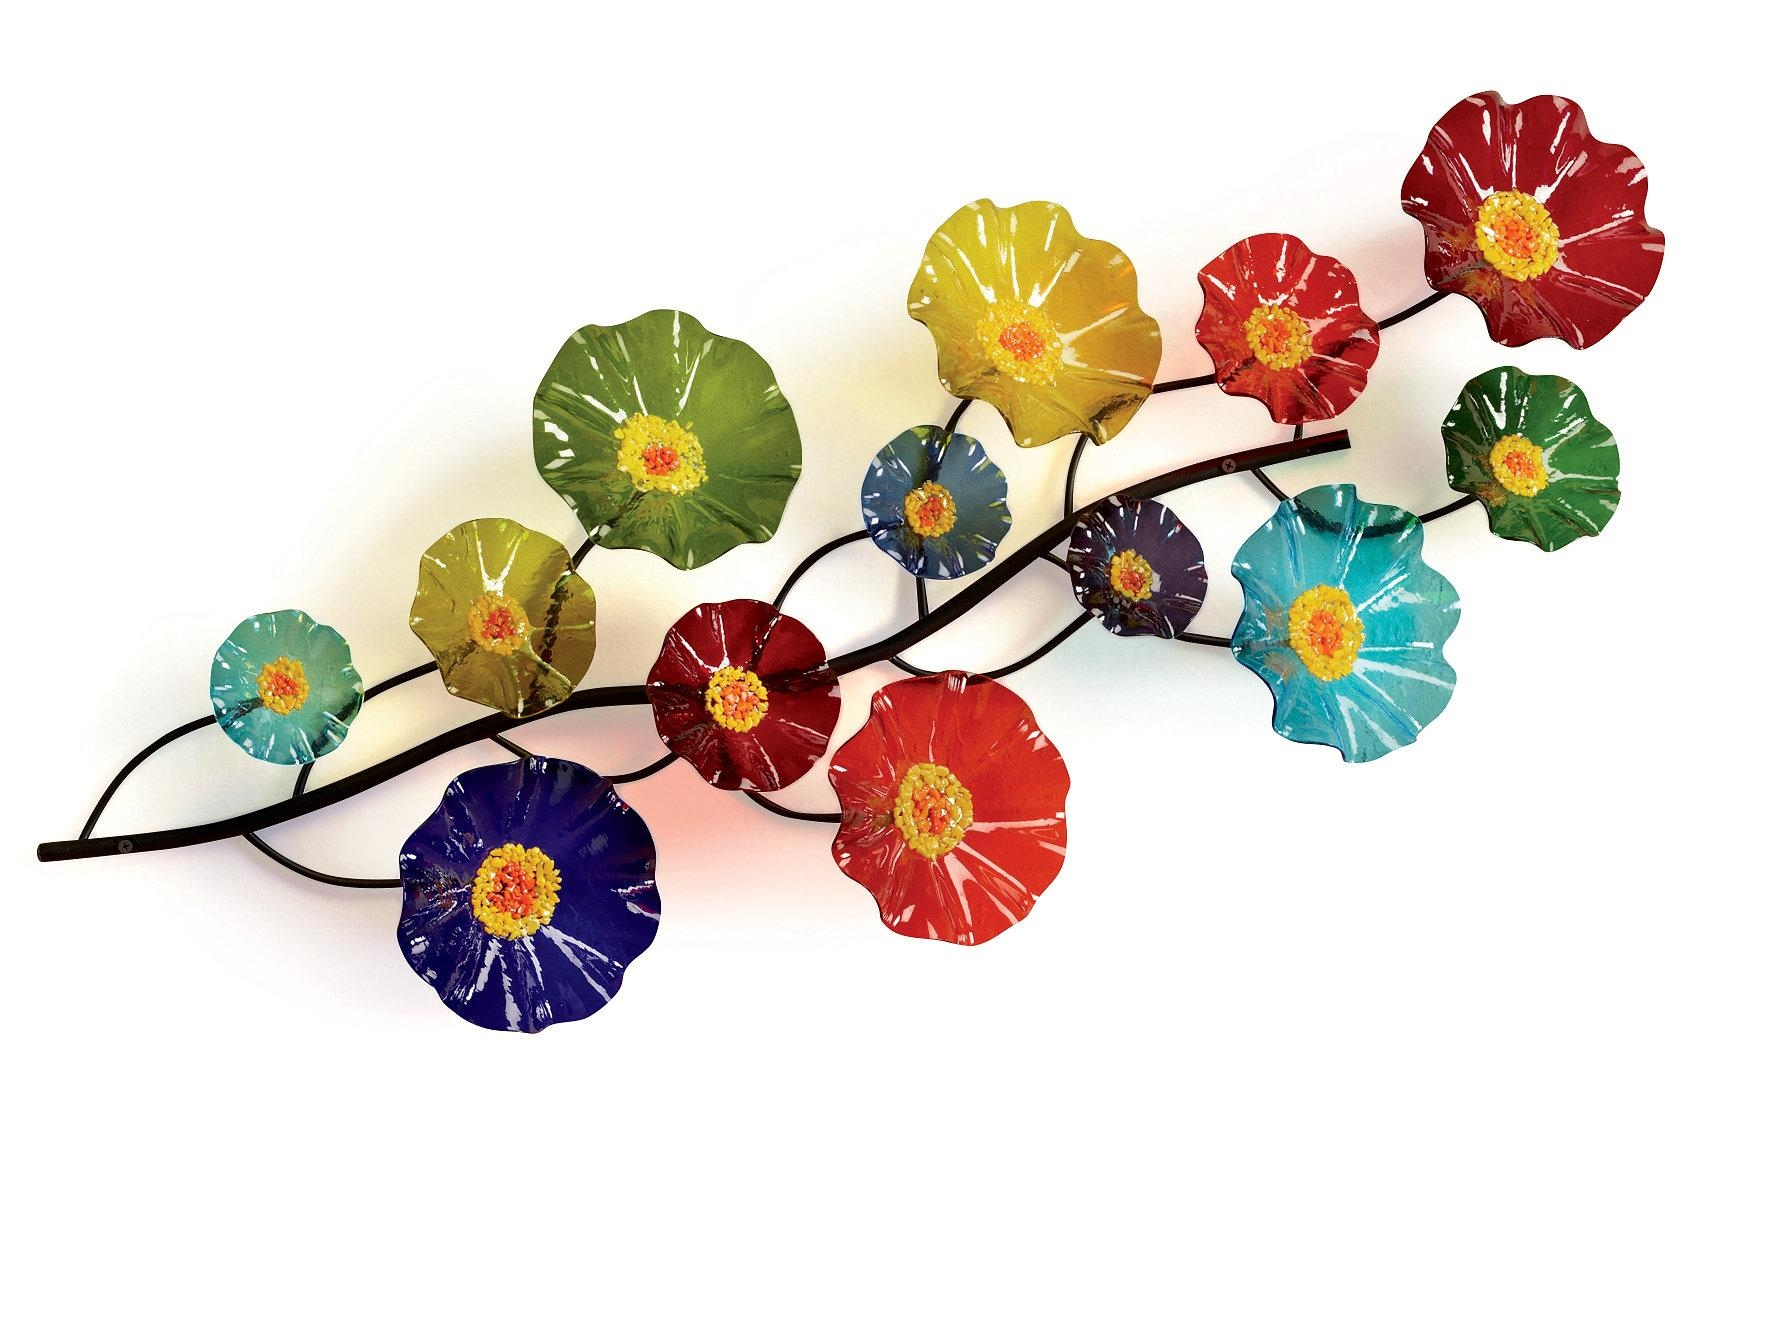 Glass Wall Artnorth American Artists | Artful Home For Fused Glass Flower Wall Art (View 16 of 20)